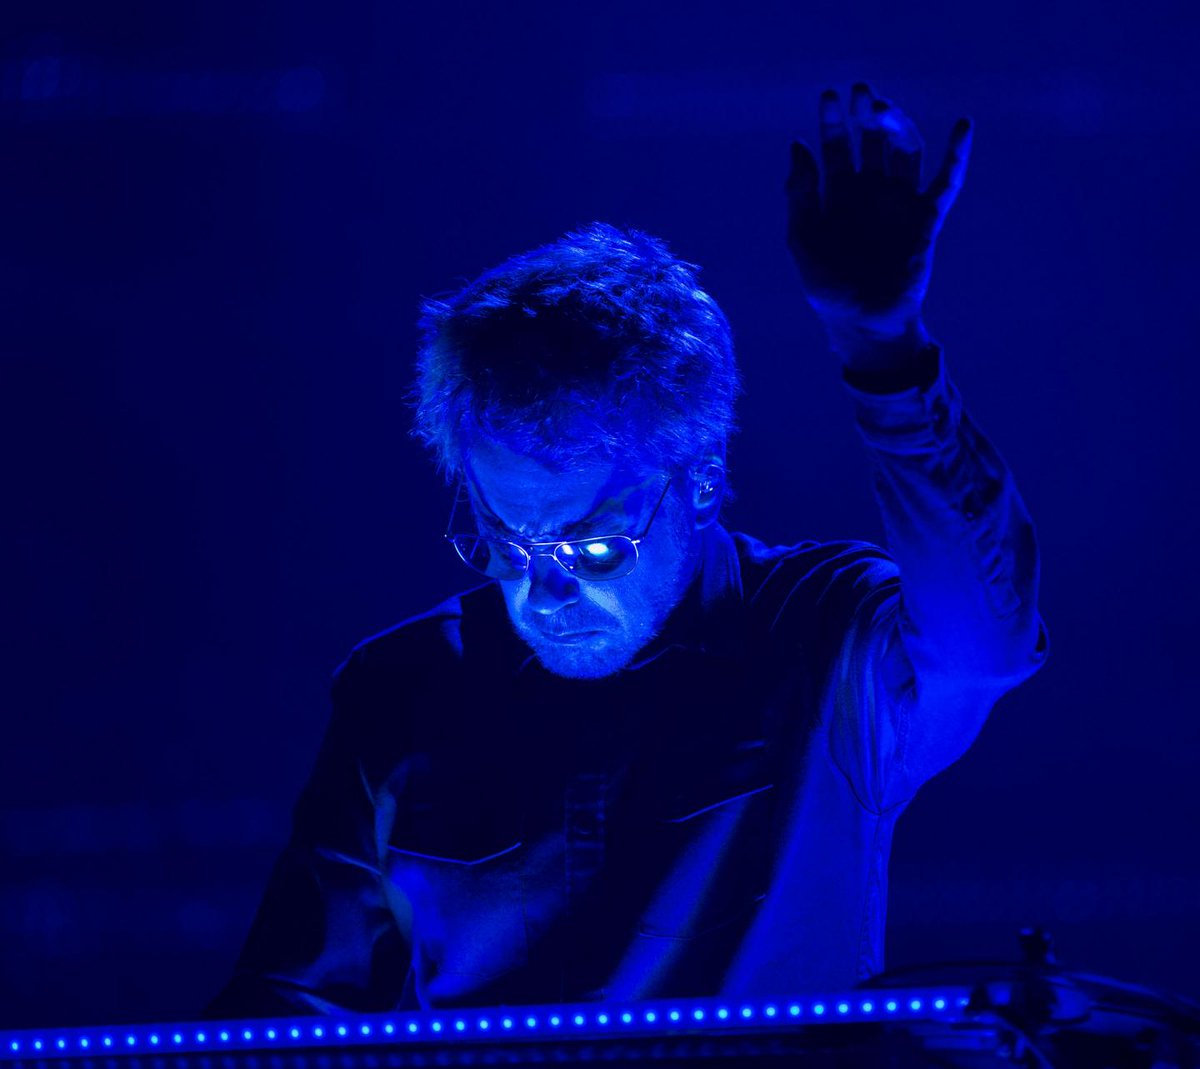 Electronic music legend Jean-Michel Jarre embarks on his first U.S. tour